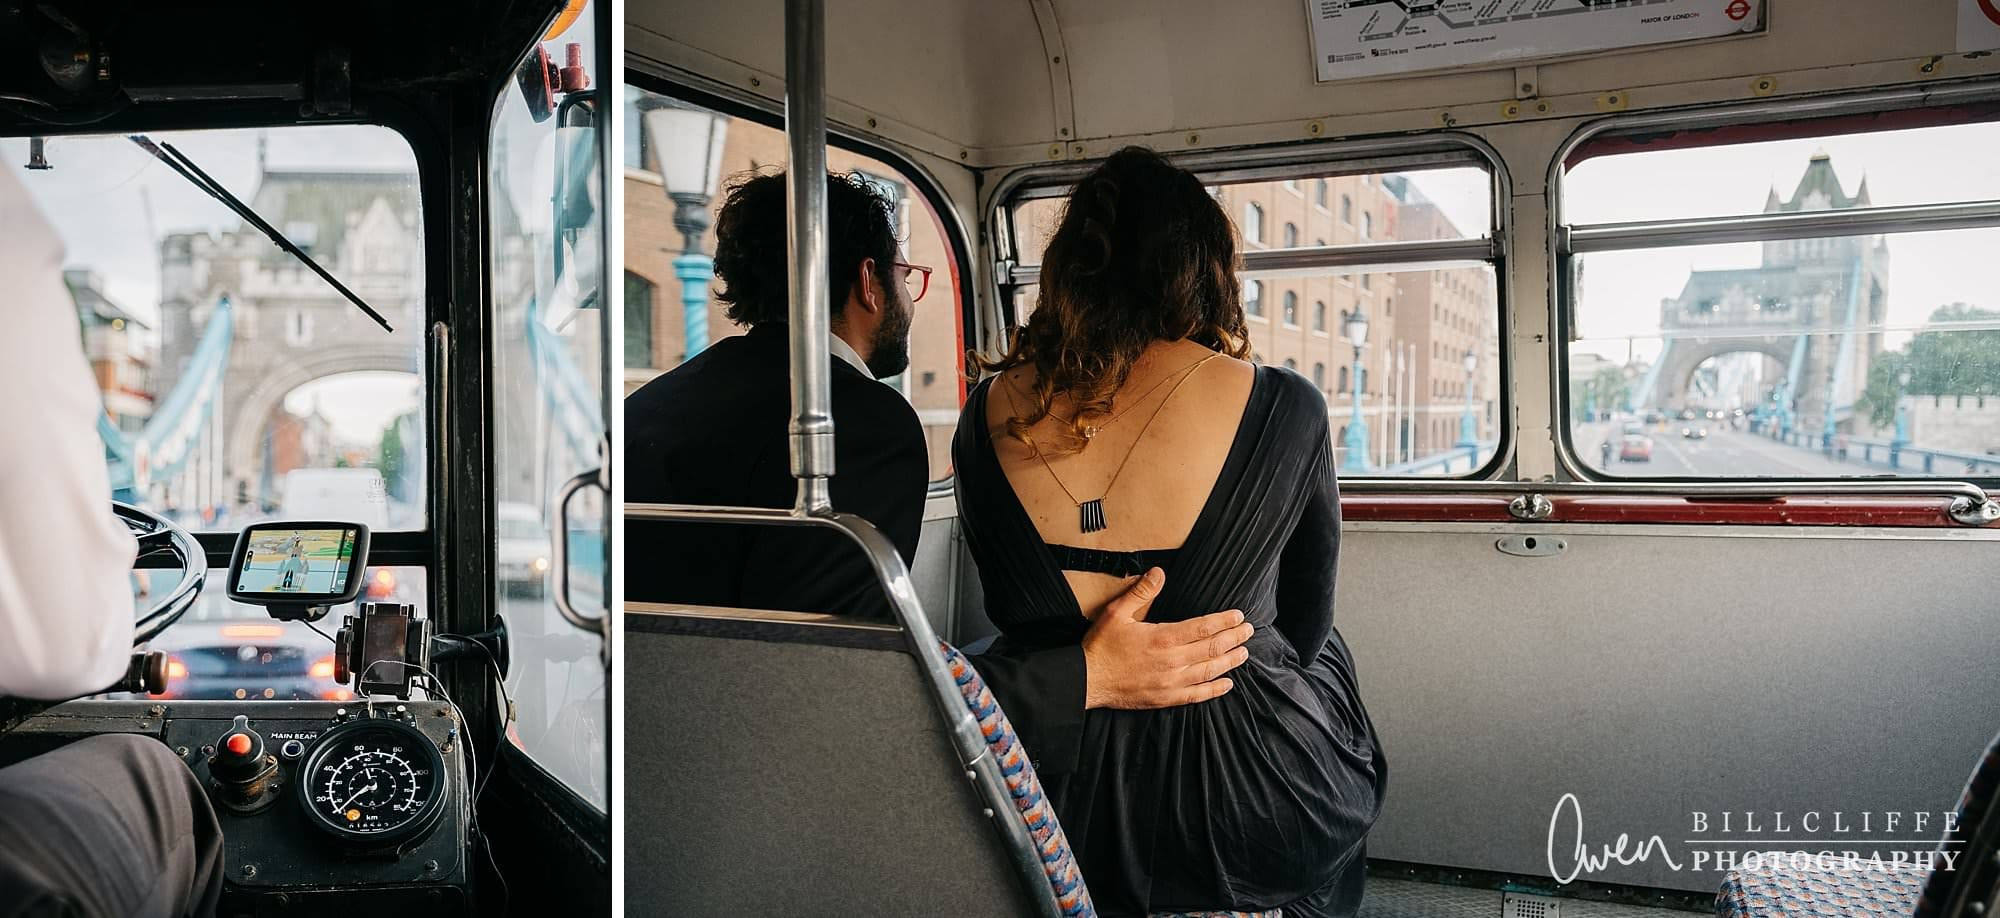 london engagement proposal photographer routemaster gr 006 - A Romantic Marriage Proposal on a London Routemaster Bus